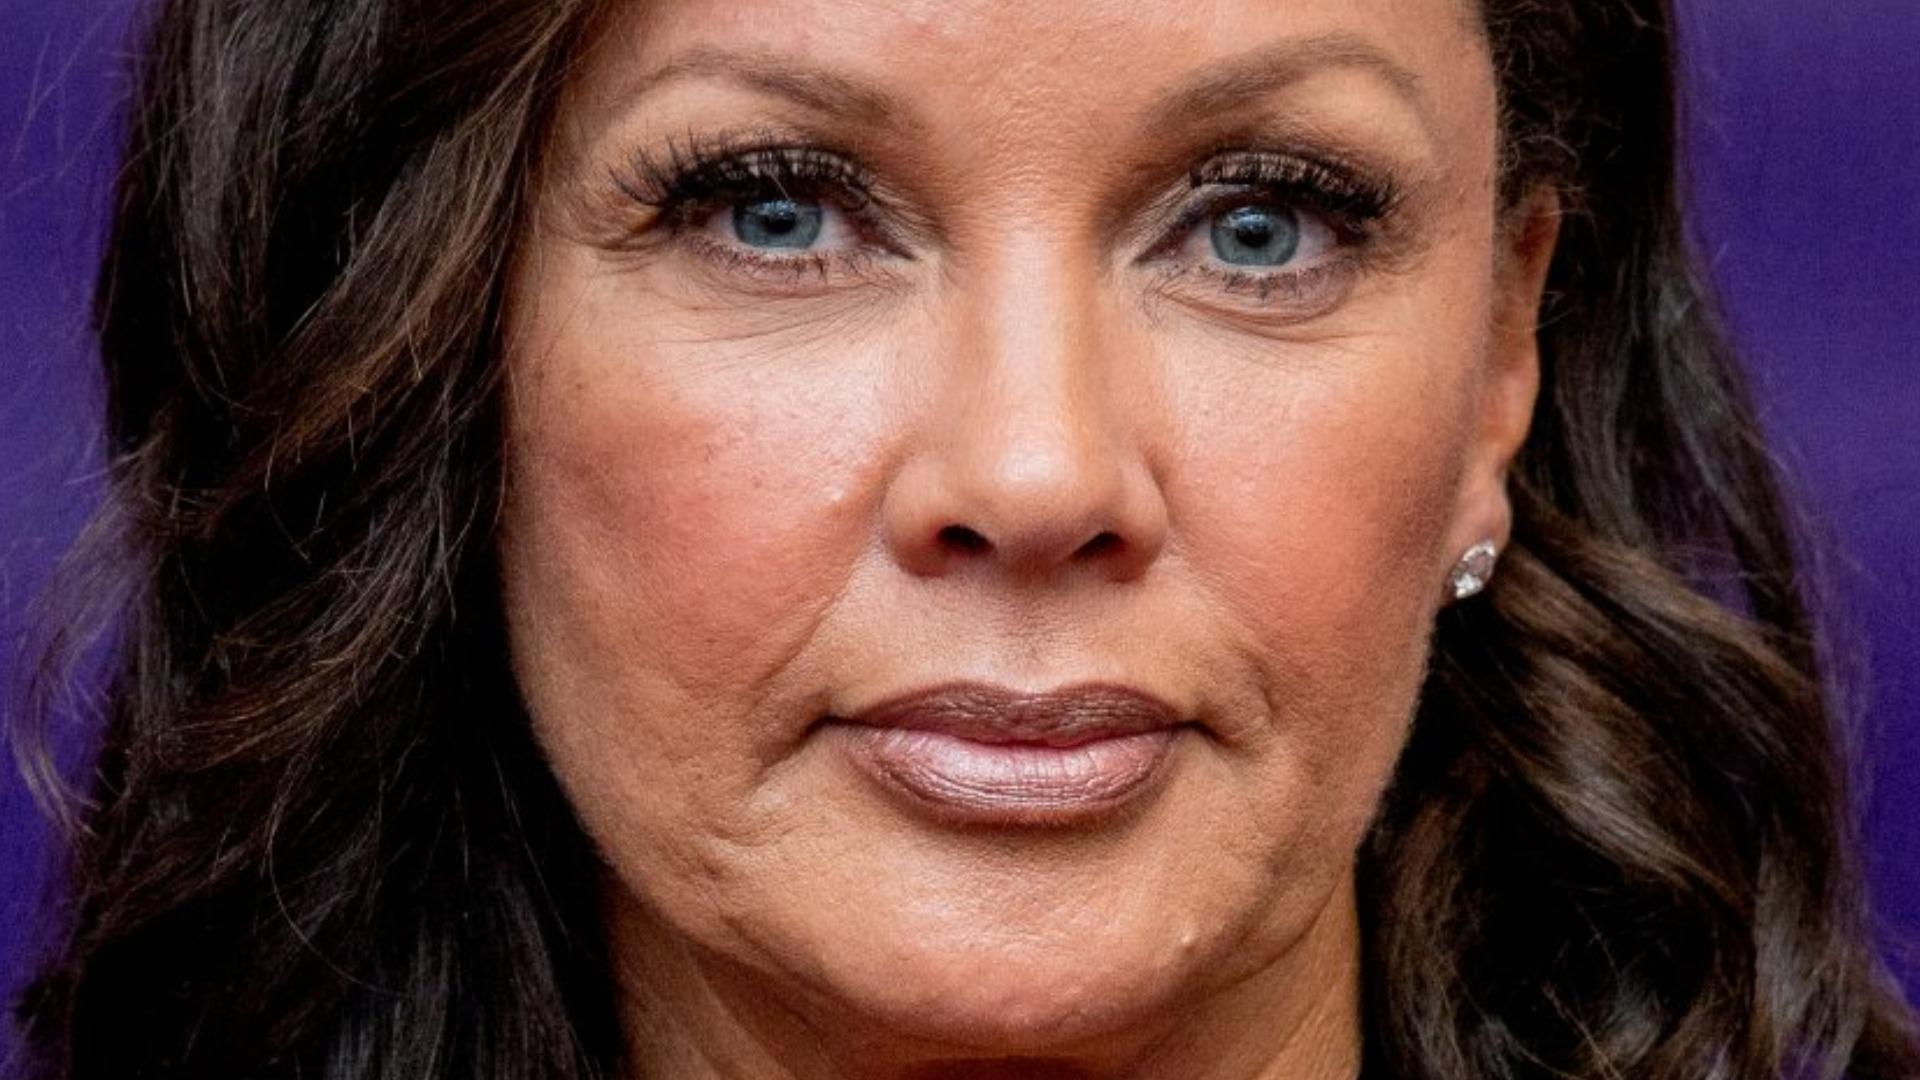 The Tragedy Surrounding Vanessa Williams Is Just Plain Sad - cover